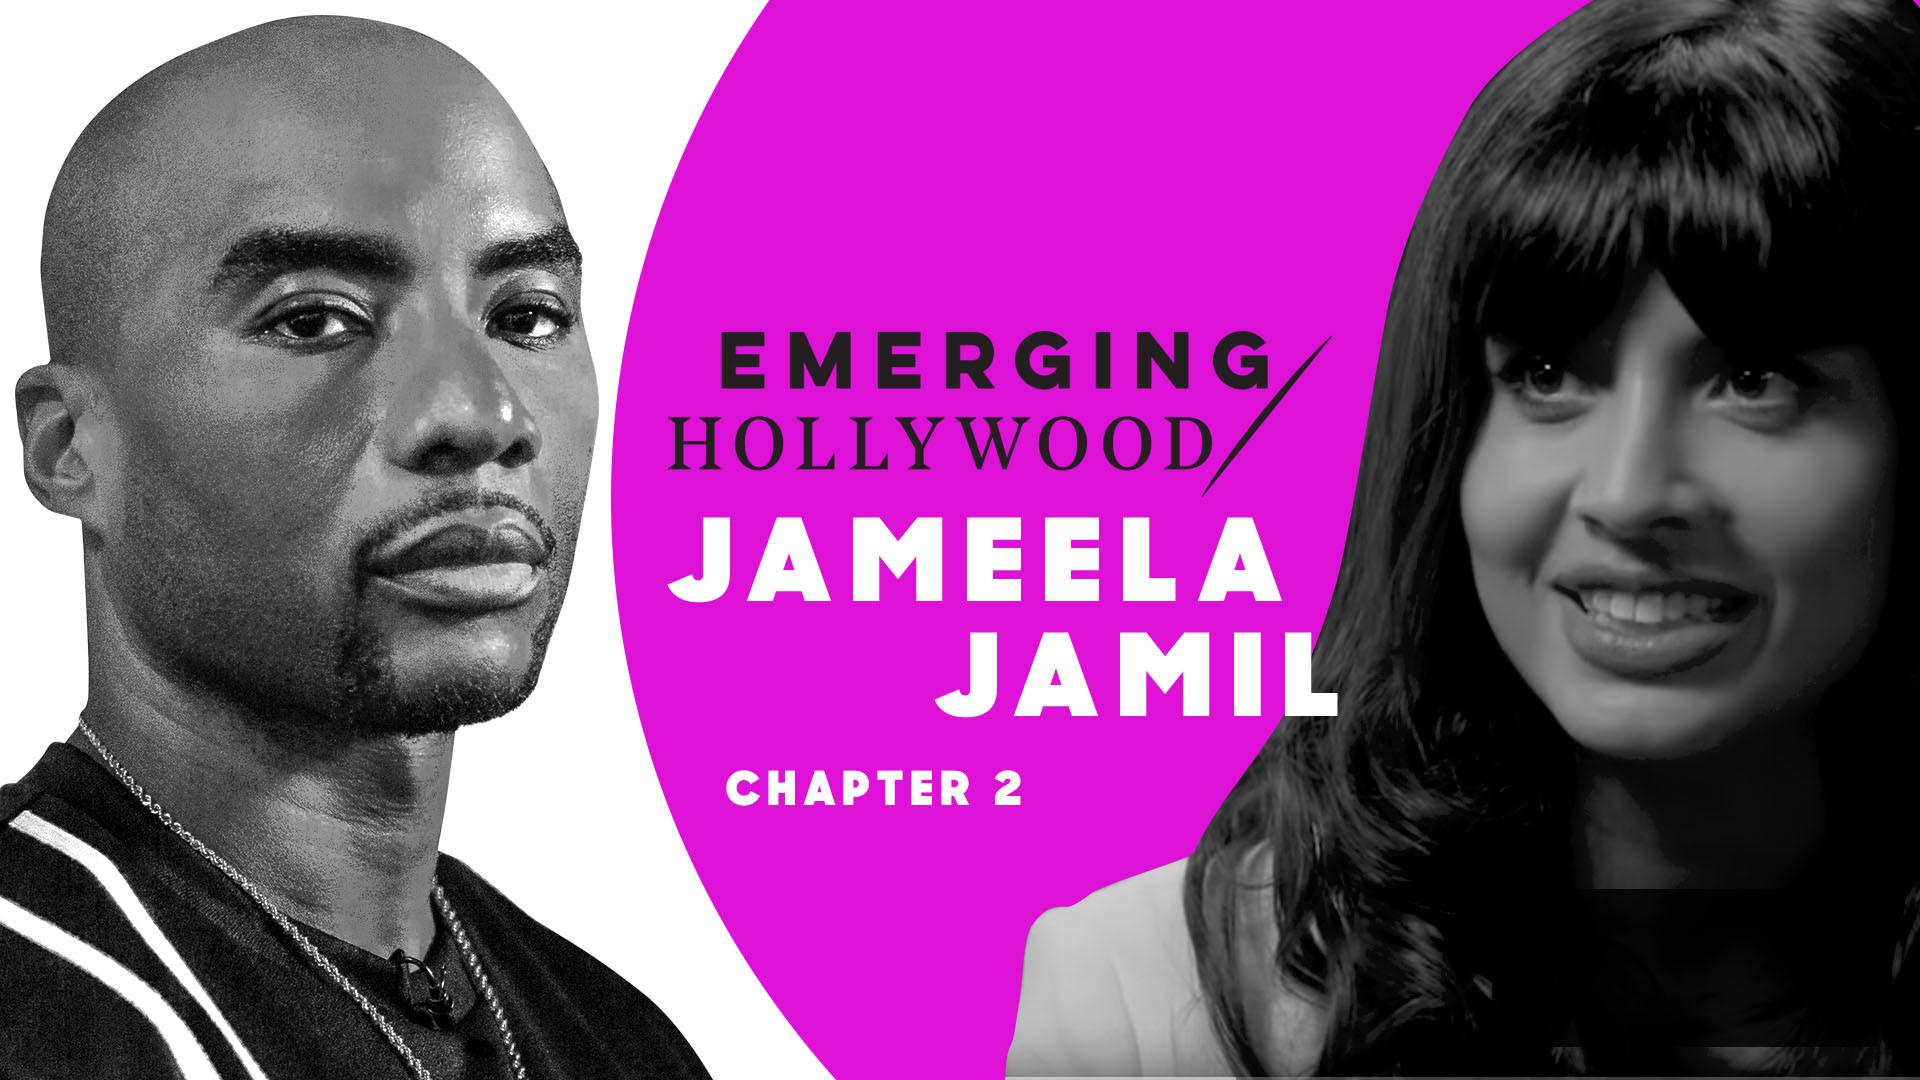 Jameela Jamil, Charlamagne tha God on Feminism, Calling Out v. Cancelling | Emerging Hollywood: What I'm About